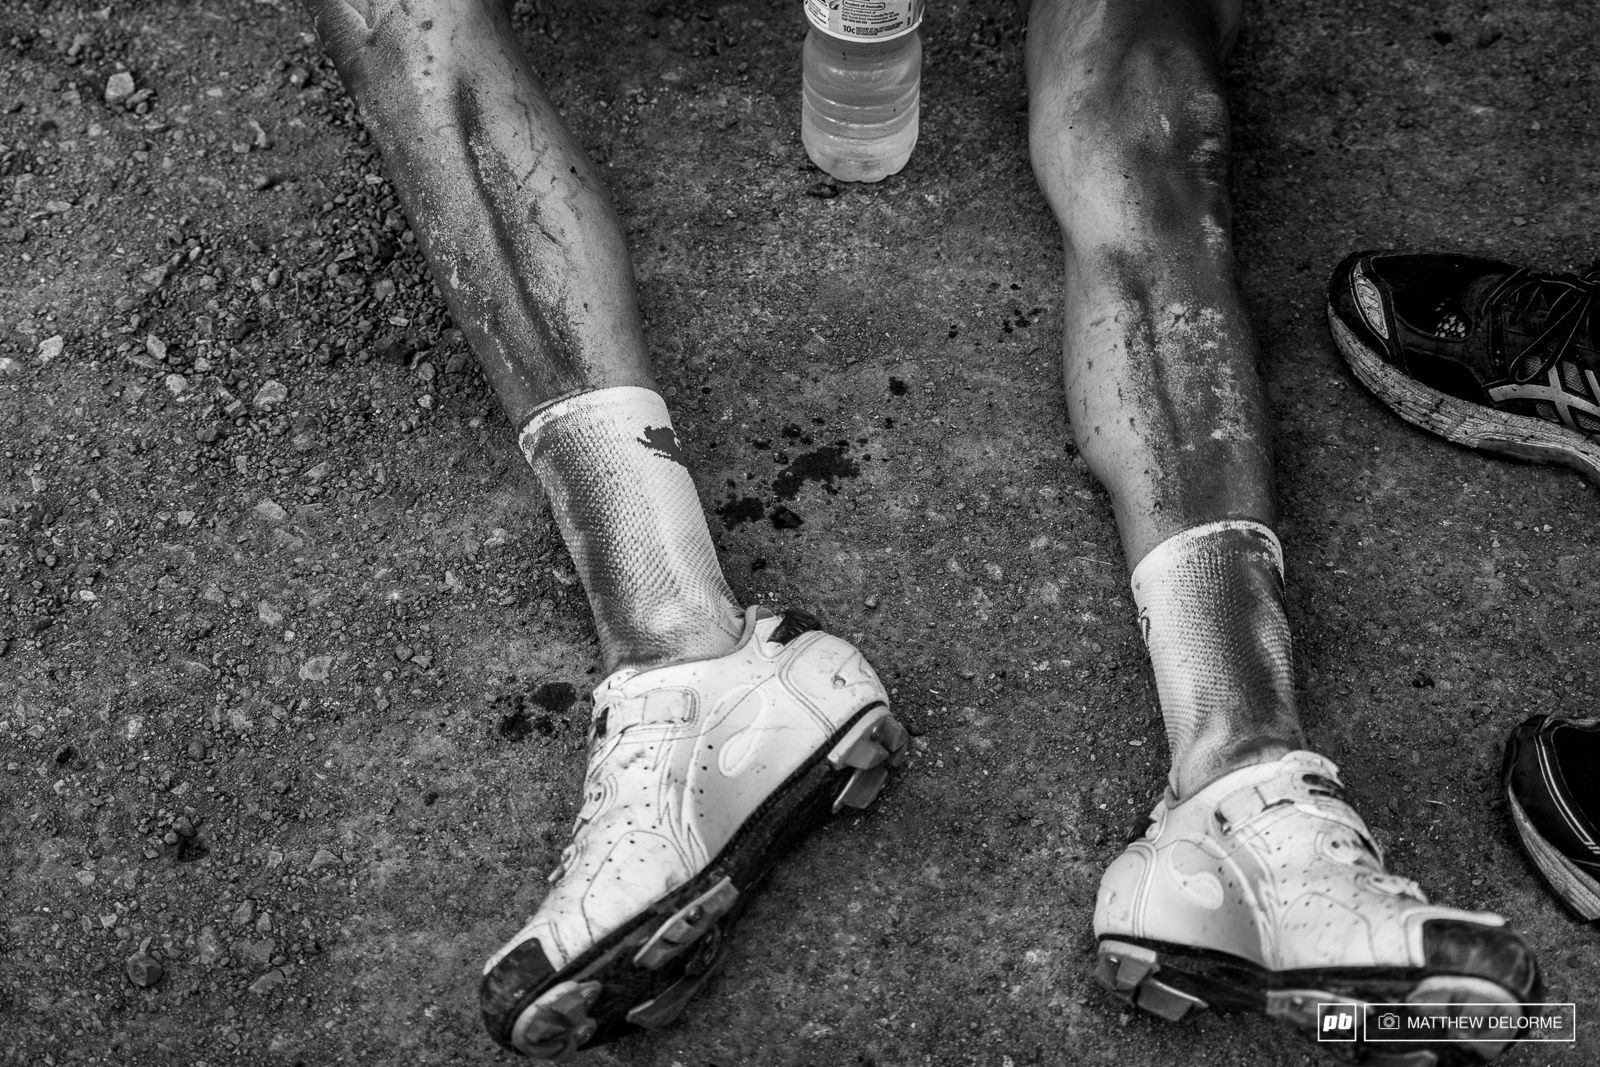 With all the rain we ve had this week you wouldn t expect to see riders come through with so much dust on their legs.